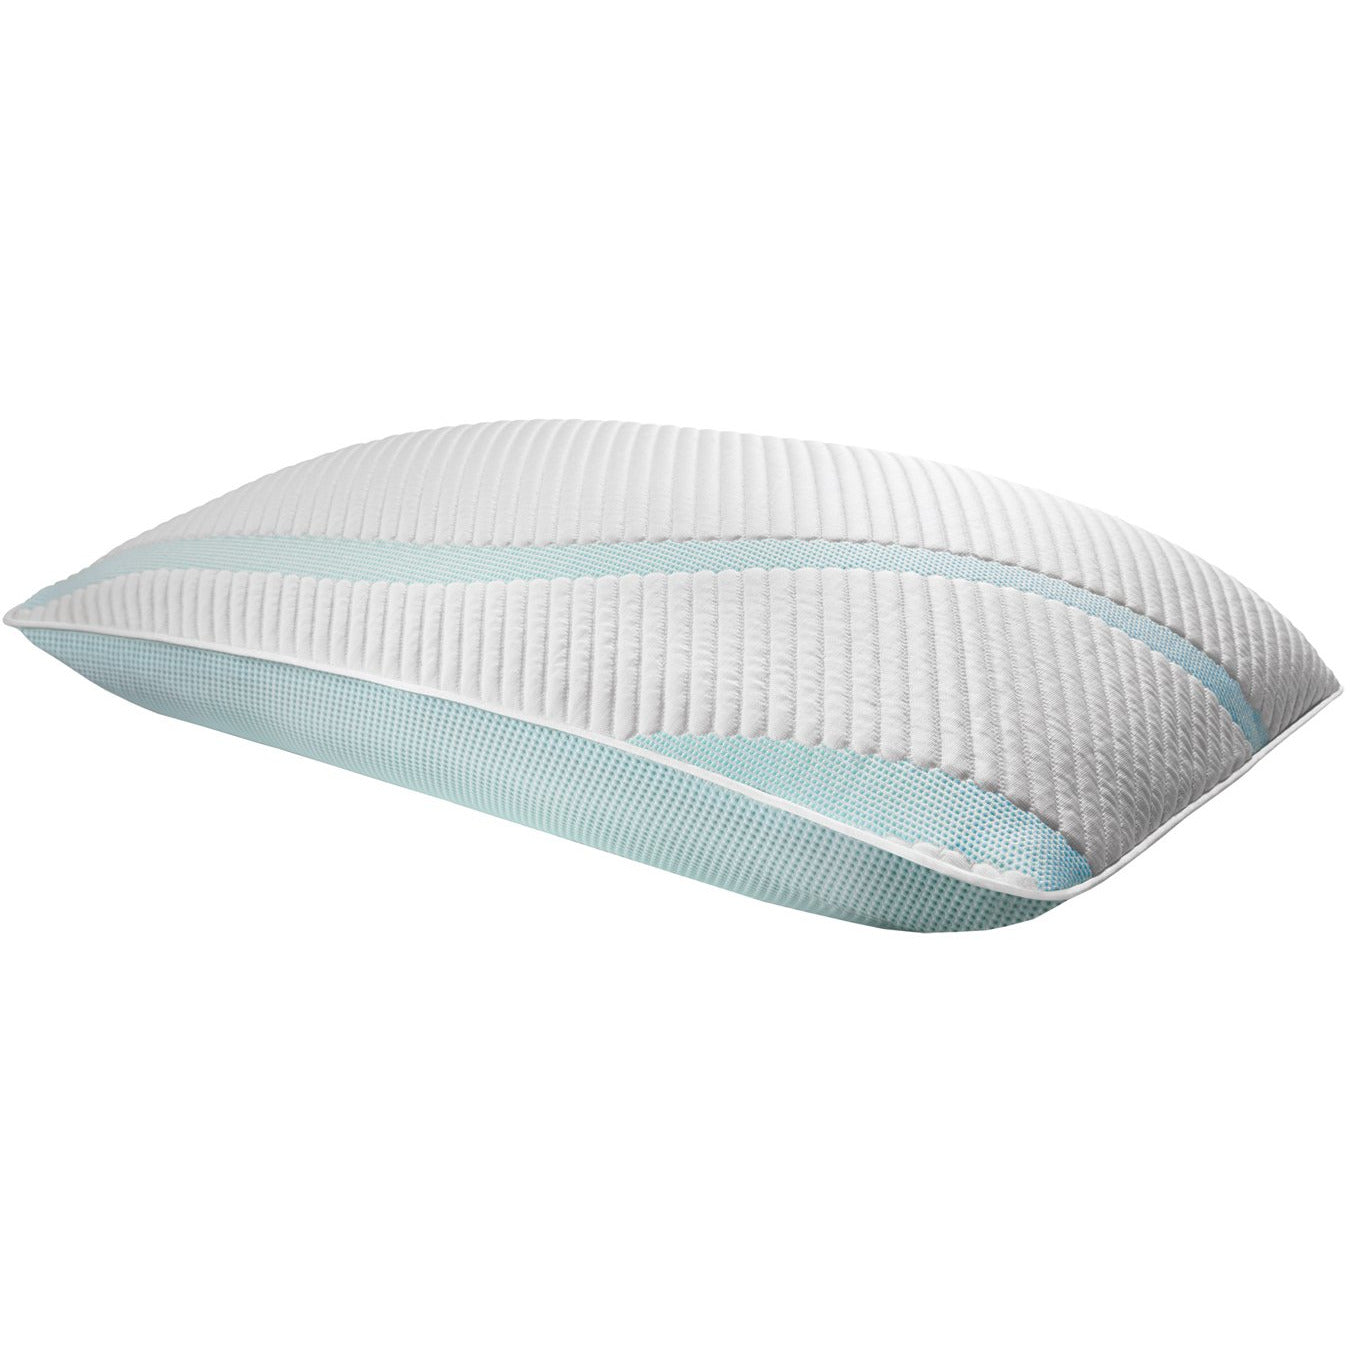 TEMPUR-ADAPT ProMid + Cooling Pillow